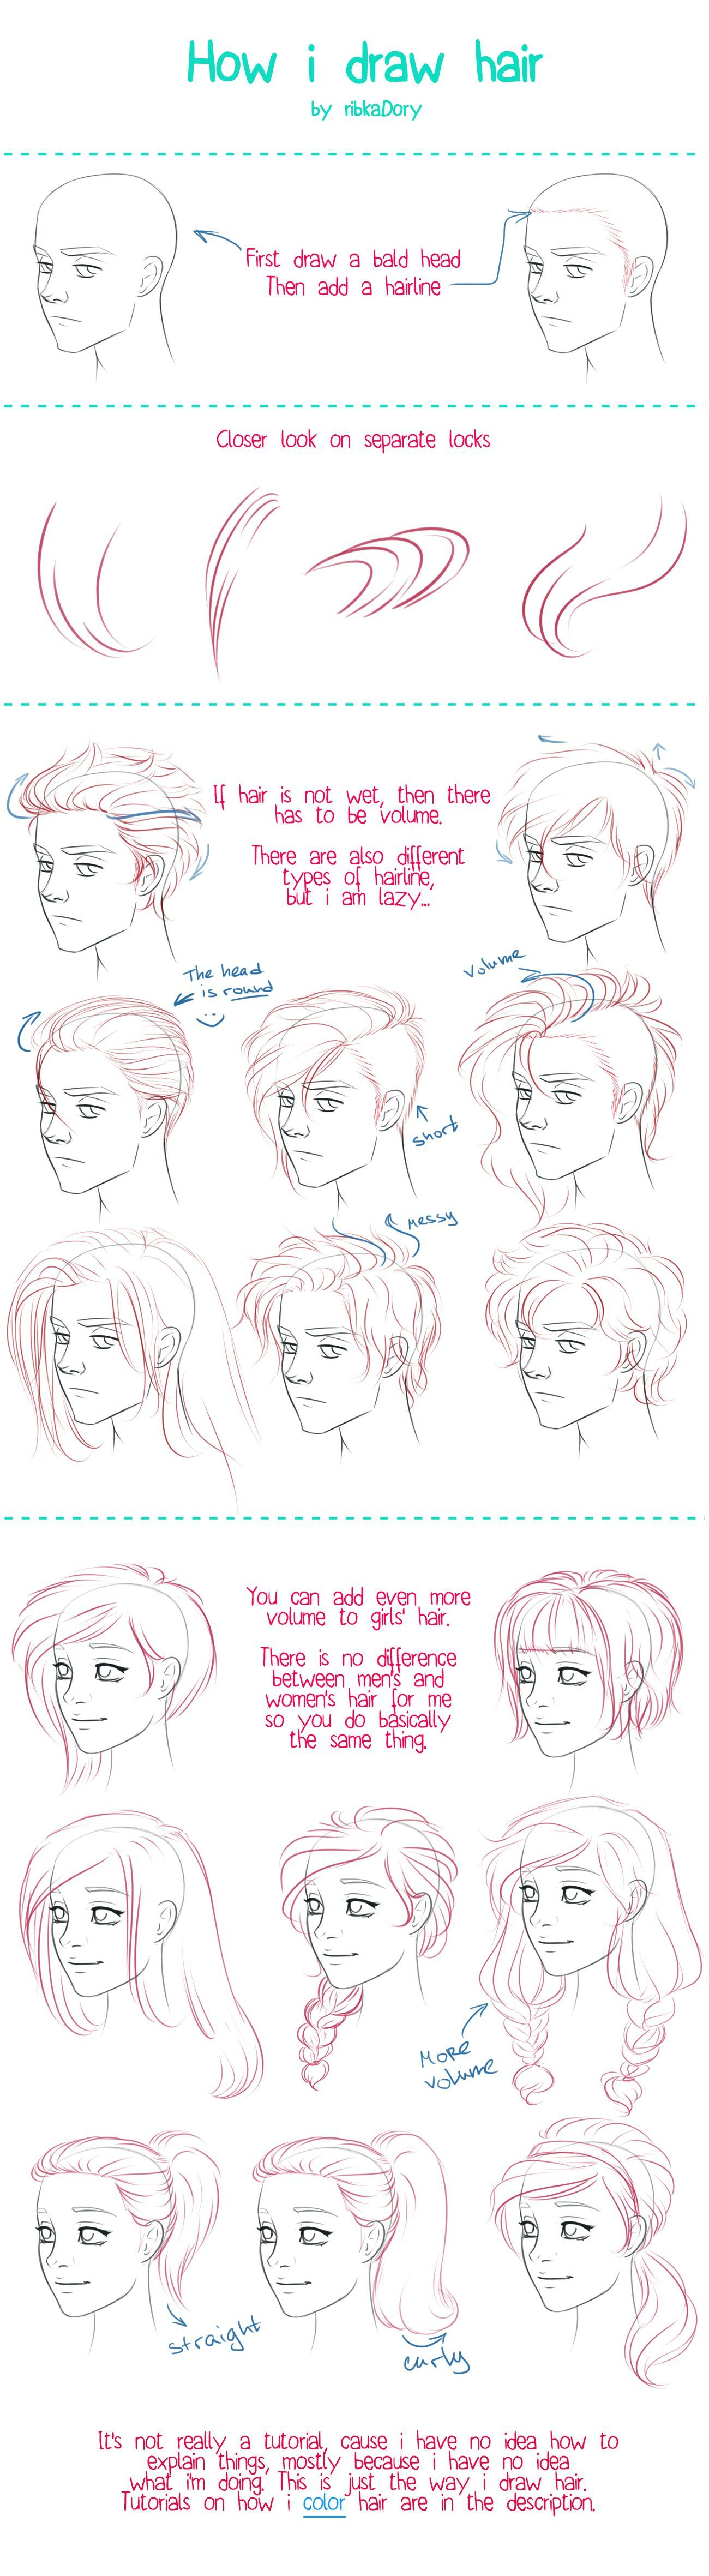 Anatomy Drawing How To Draw Hair Tutorial By Ribkadory On